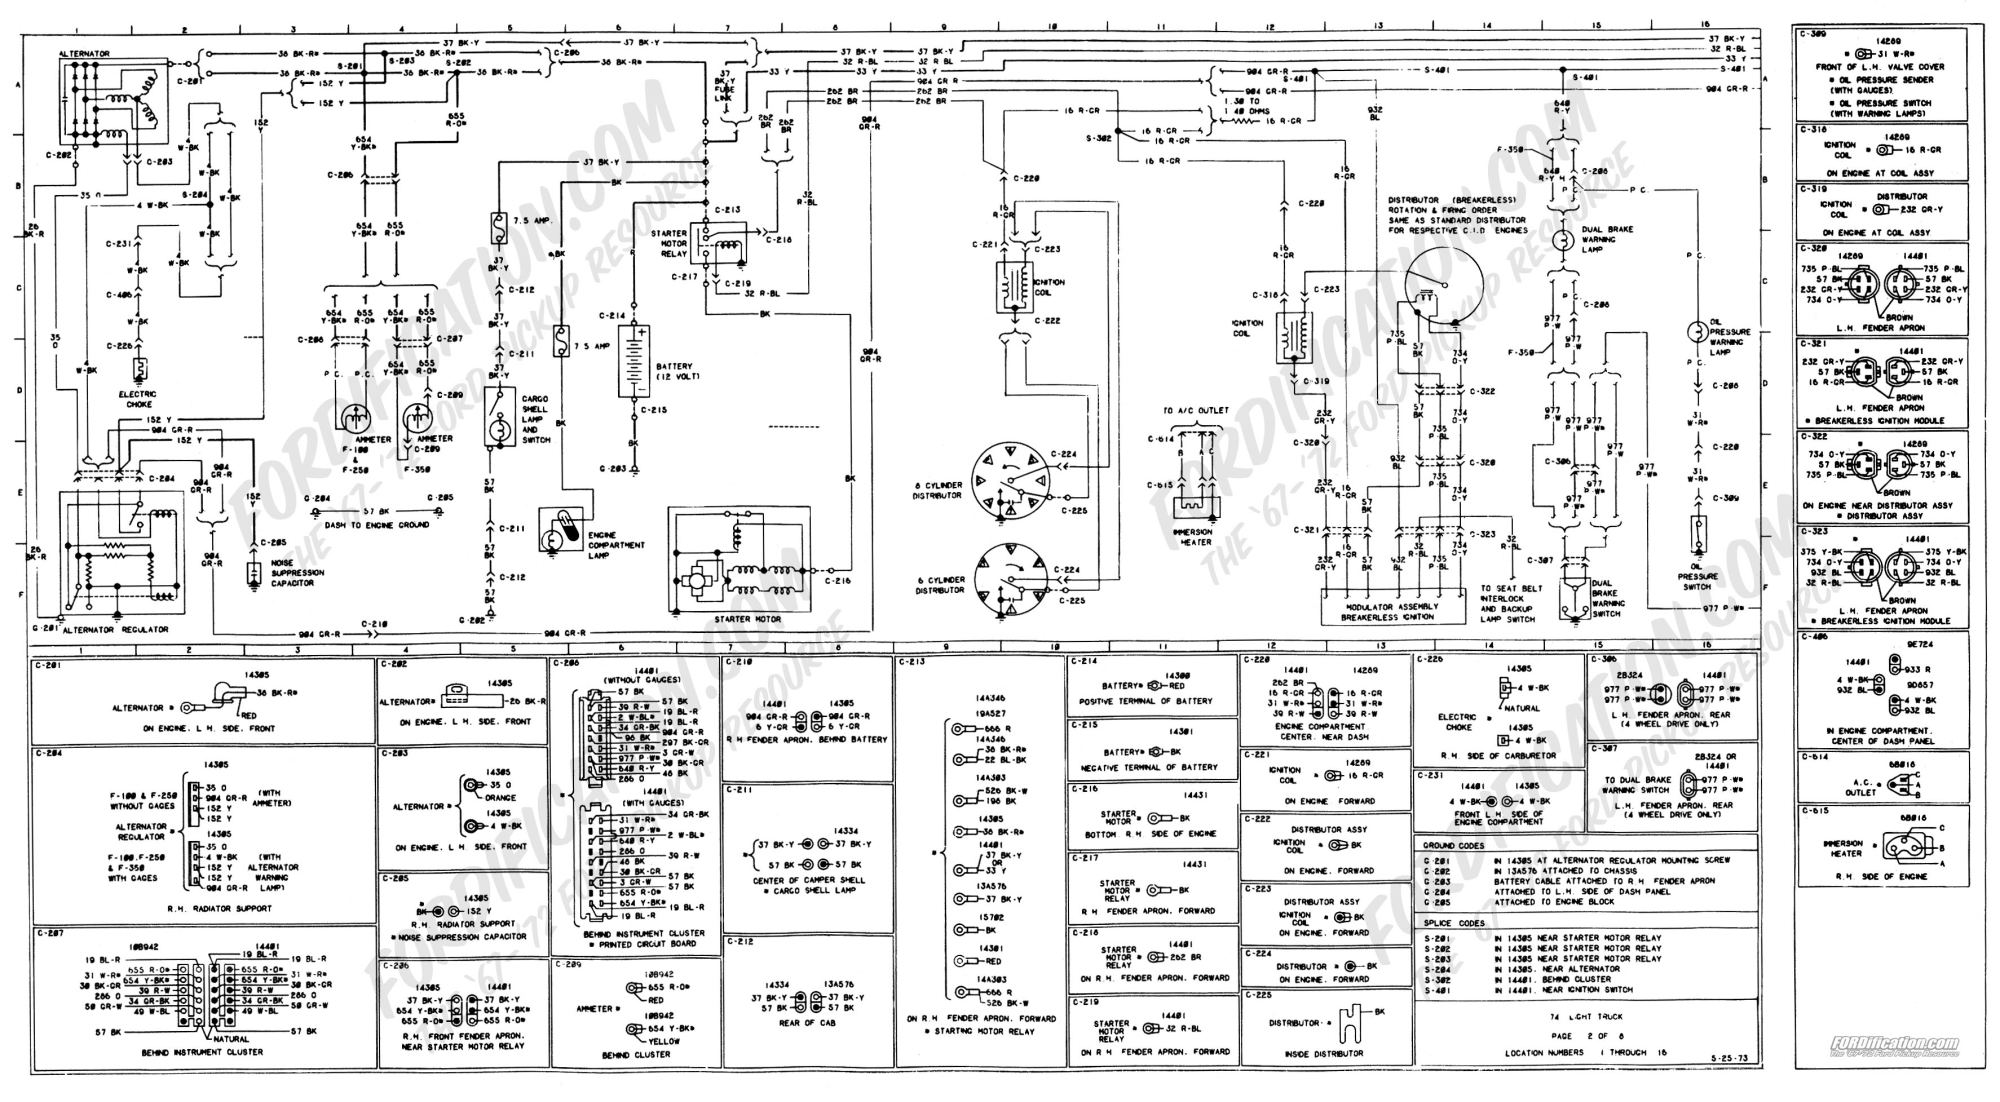 hight resolution of ford l9000 wiring diagram wiring diagram name 1993 ford l9000 wiring diagram